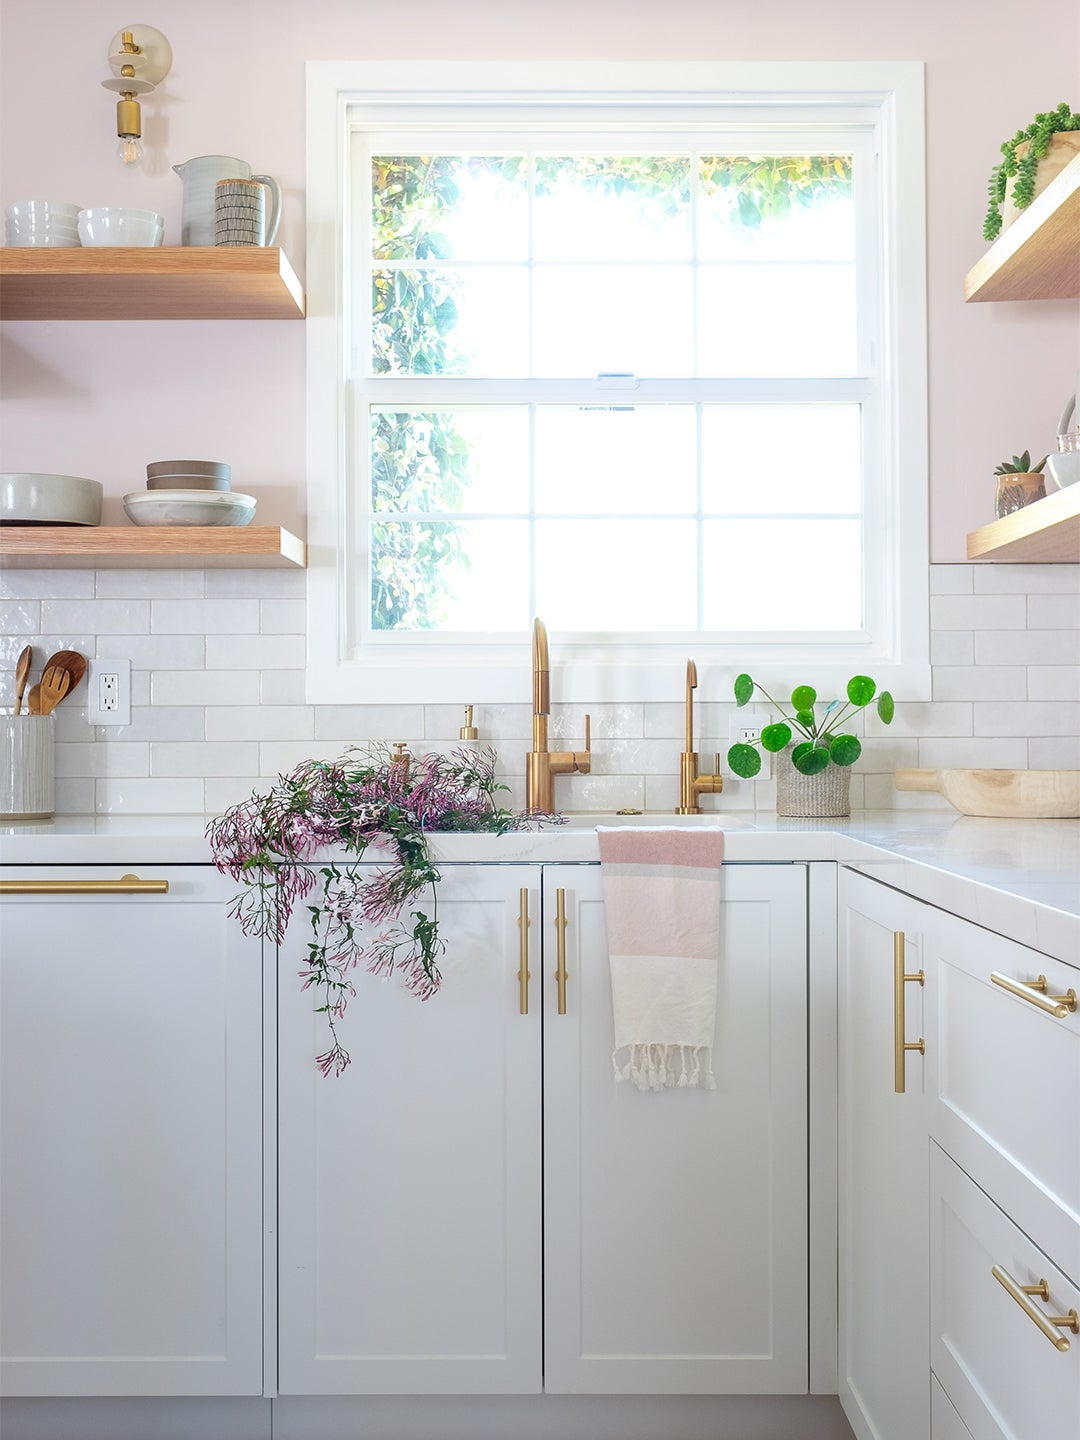 00-FEATURE-Gina-Gutierrez-kitchen-remodel-domino